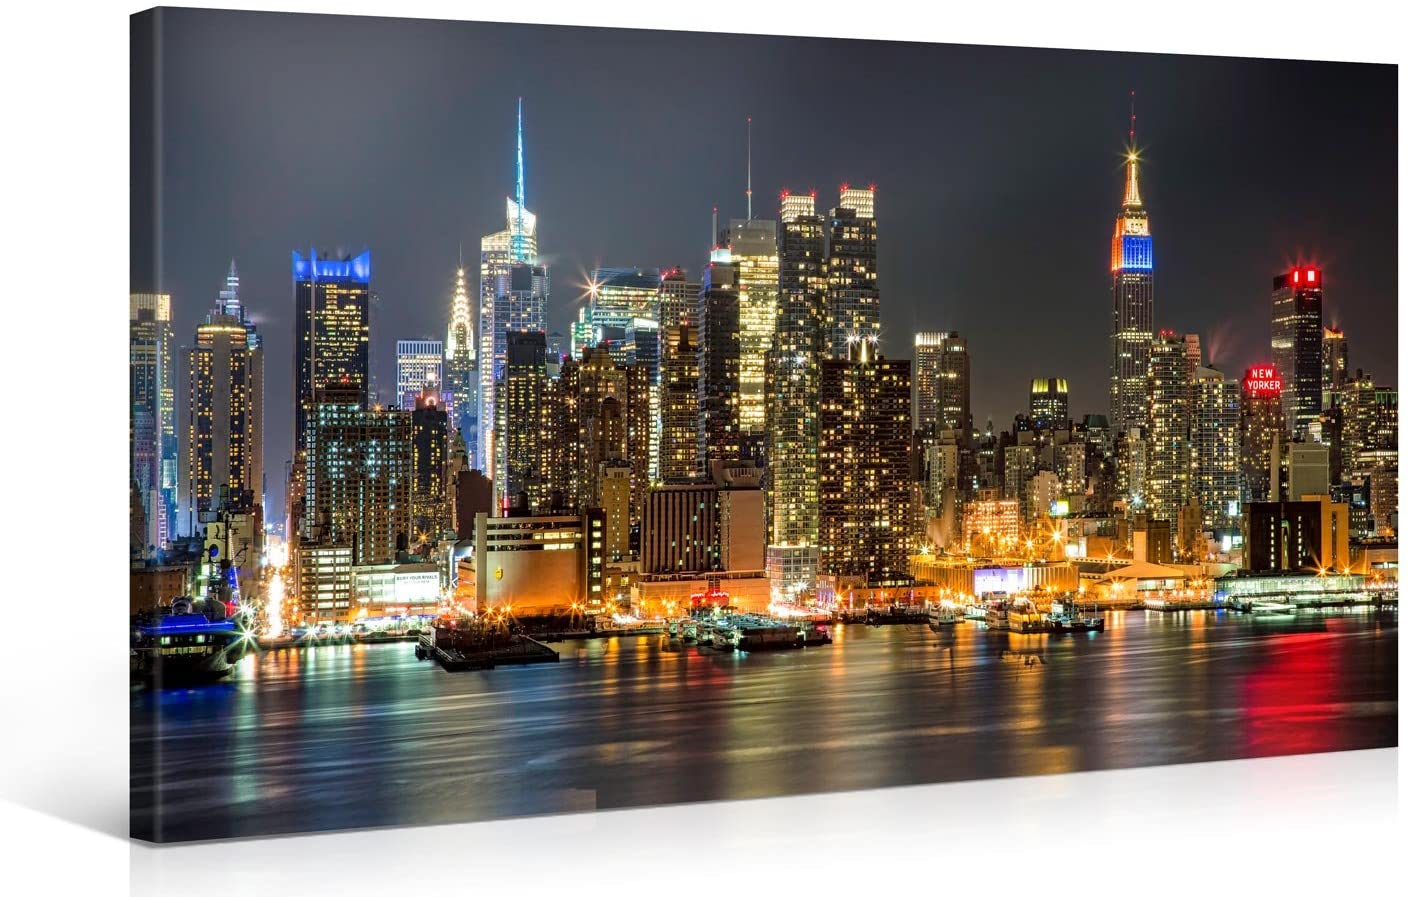 Amazon Com Large Canvas Print Wall Art Manhattan Night Lights 40 X 20 Inch Canvas Picture Stretched On Wooden Frame New York City Cityscape Giclee Canvas Printing Hanging Wall